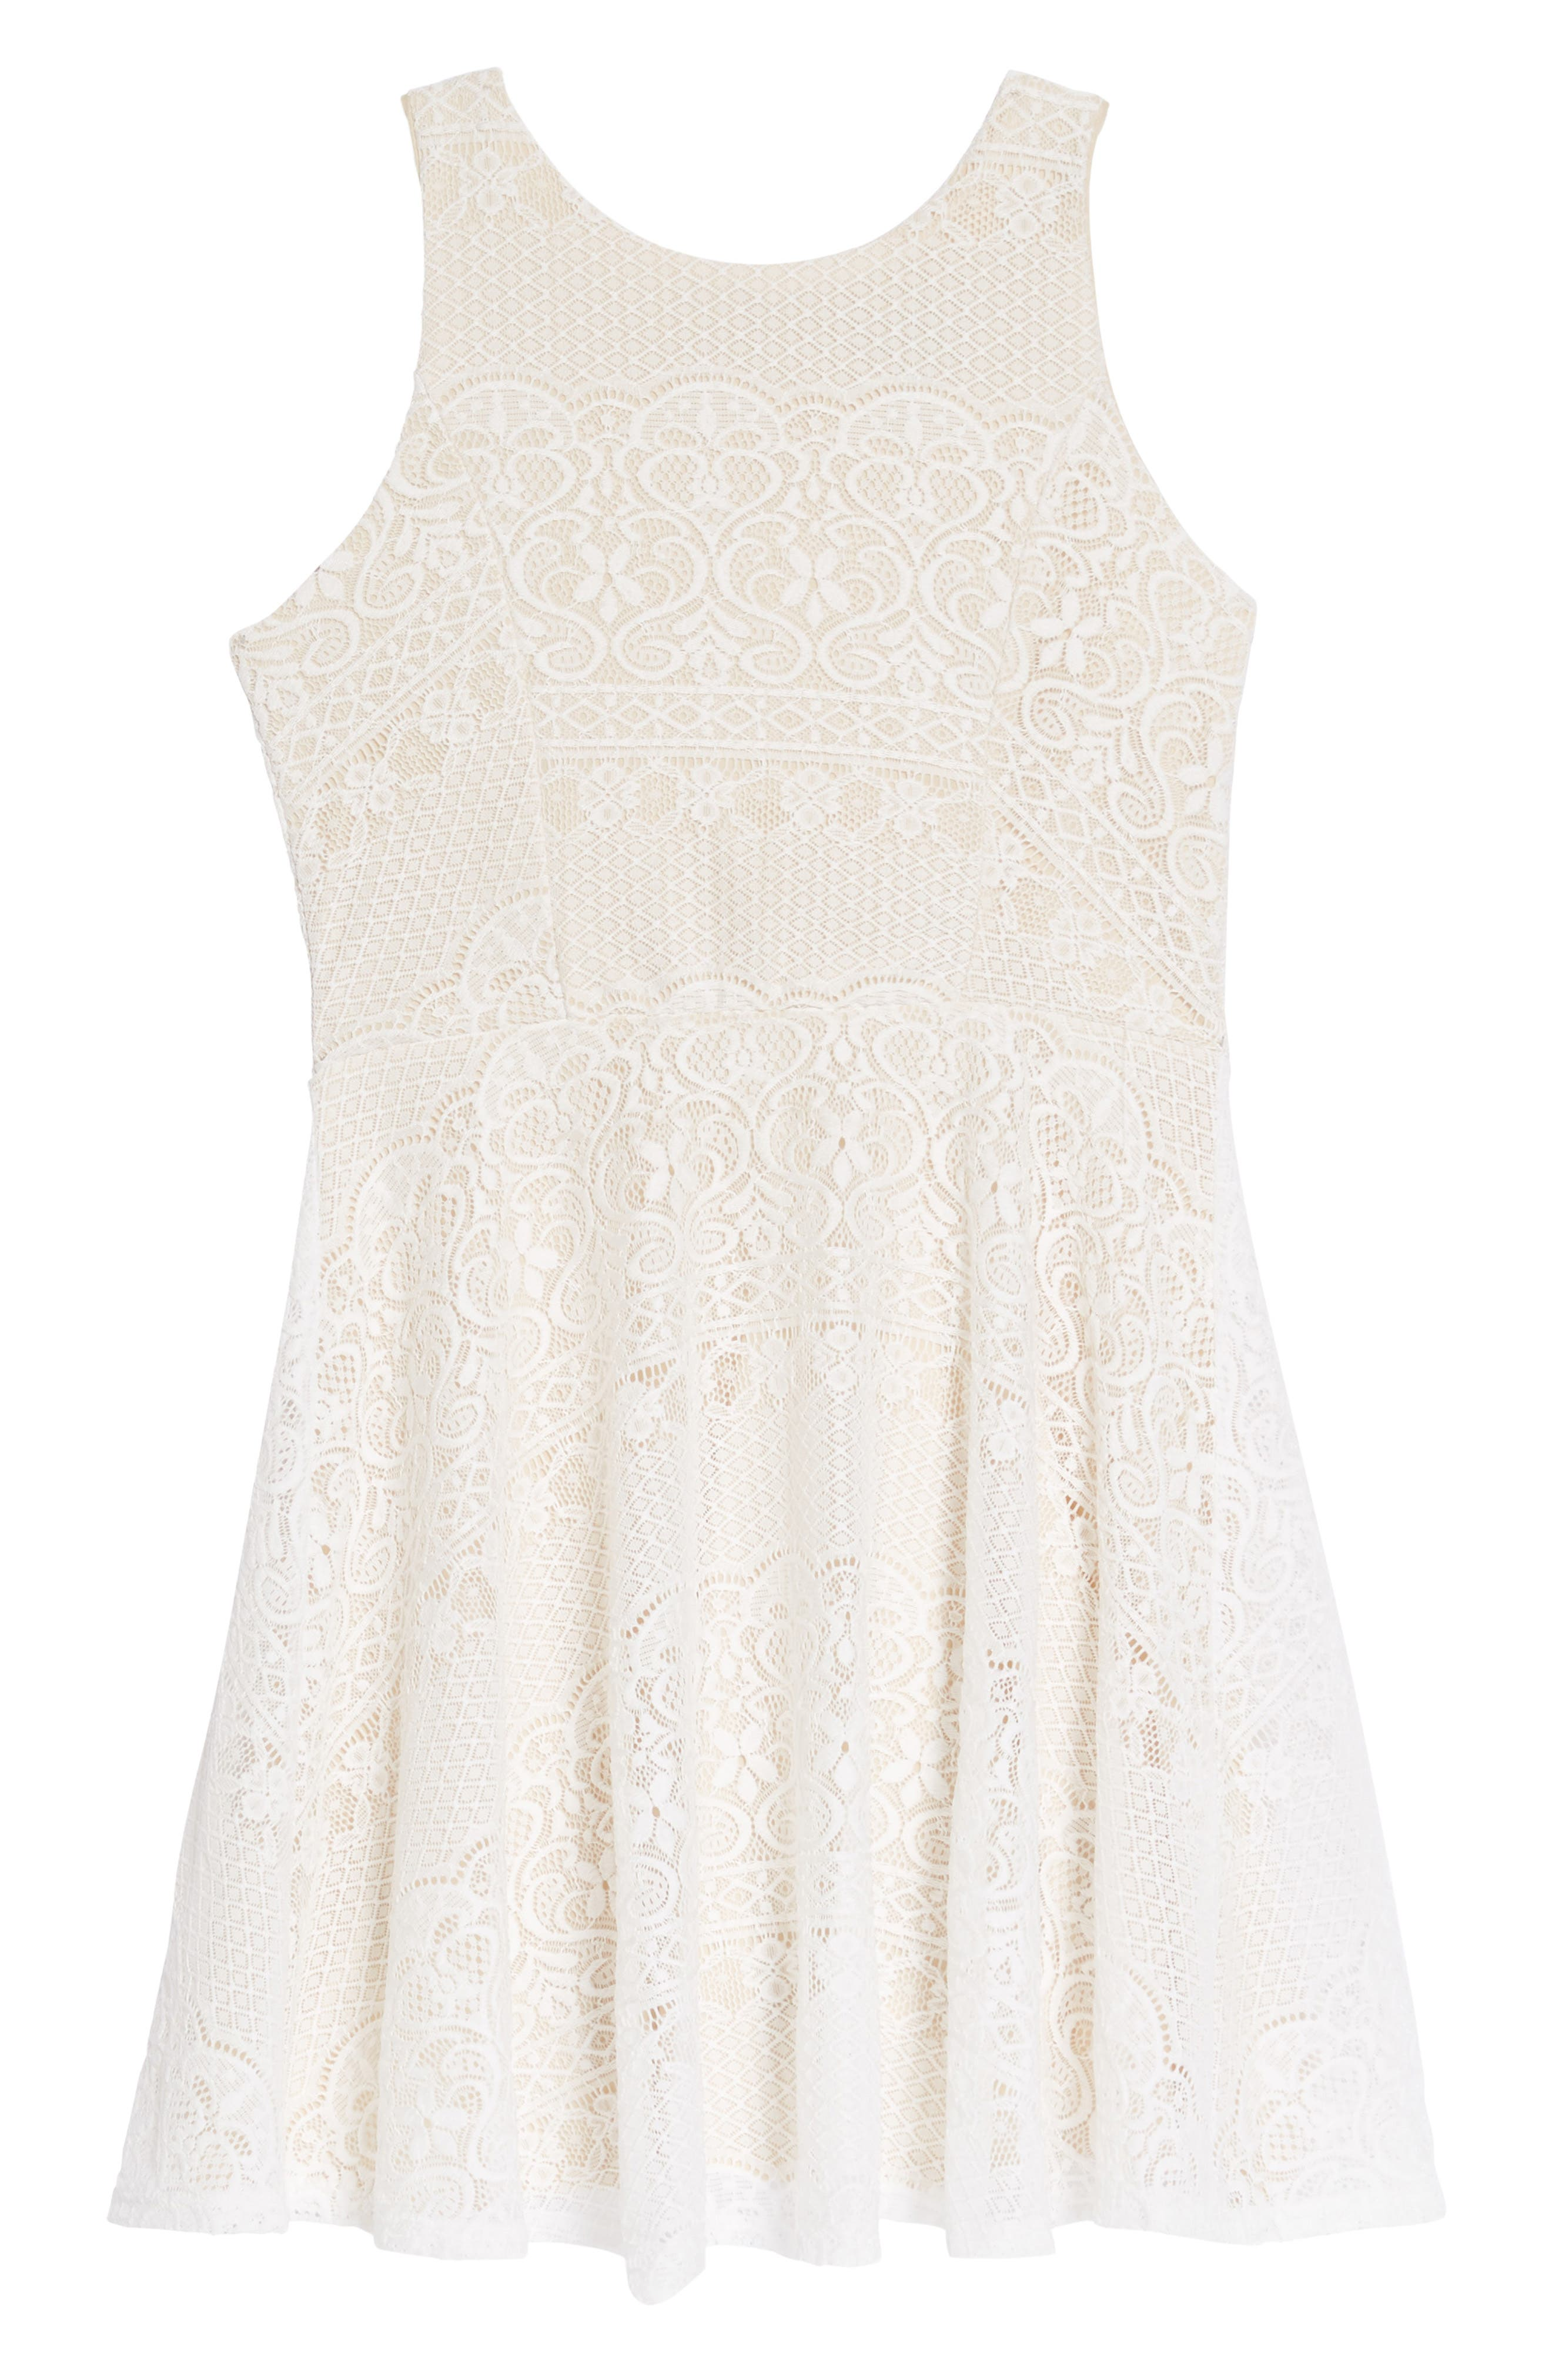 Alternate Image 1 Selected - Ava & Yelly Rochelle Lace Skater Dress (Big Girls)